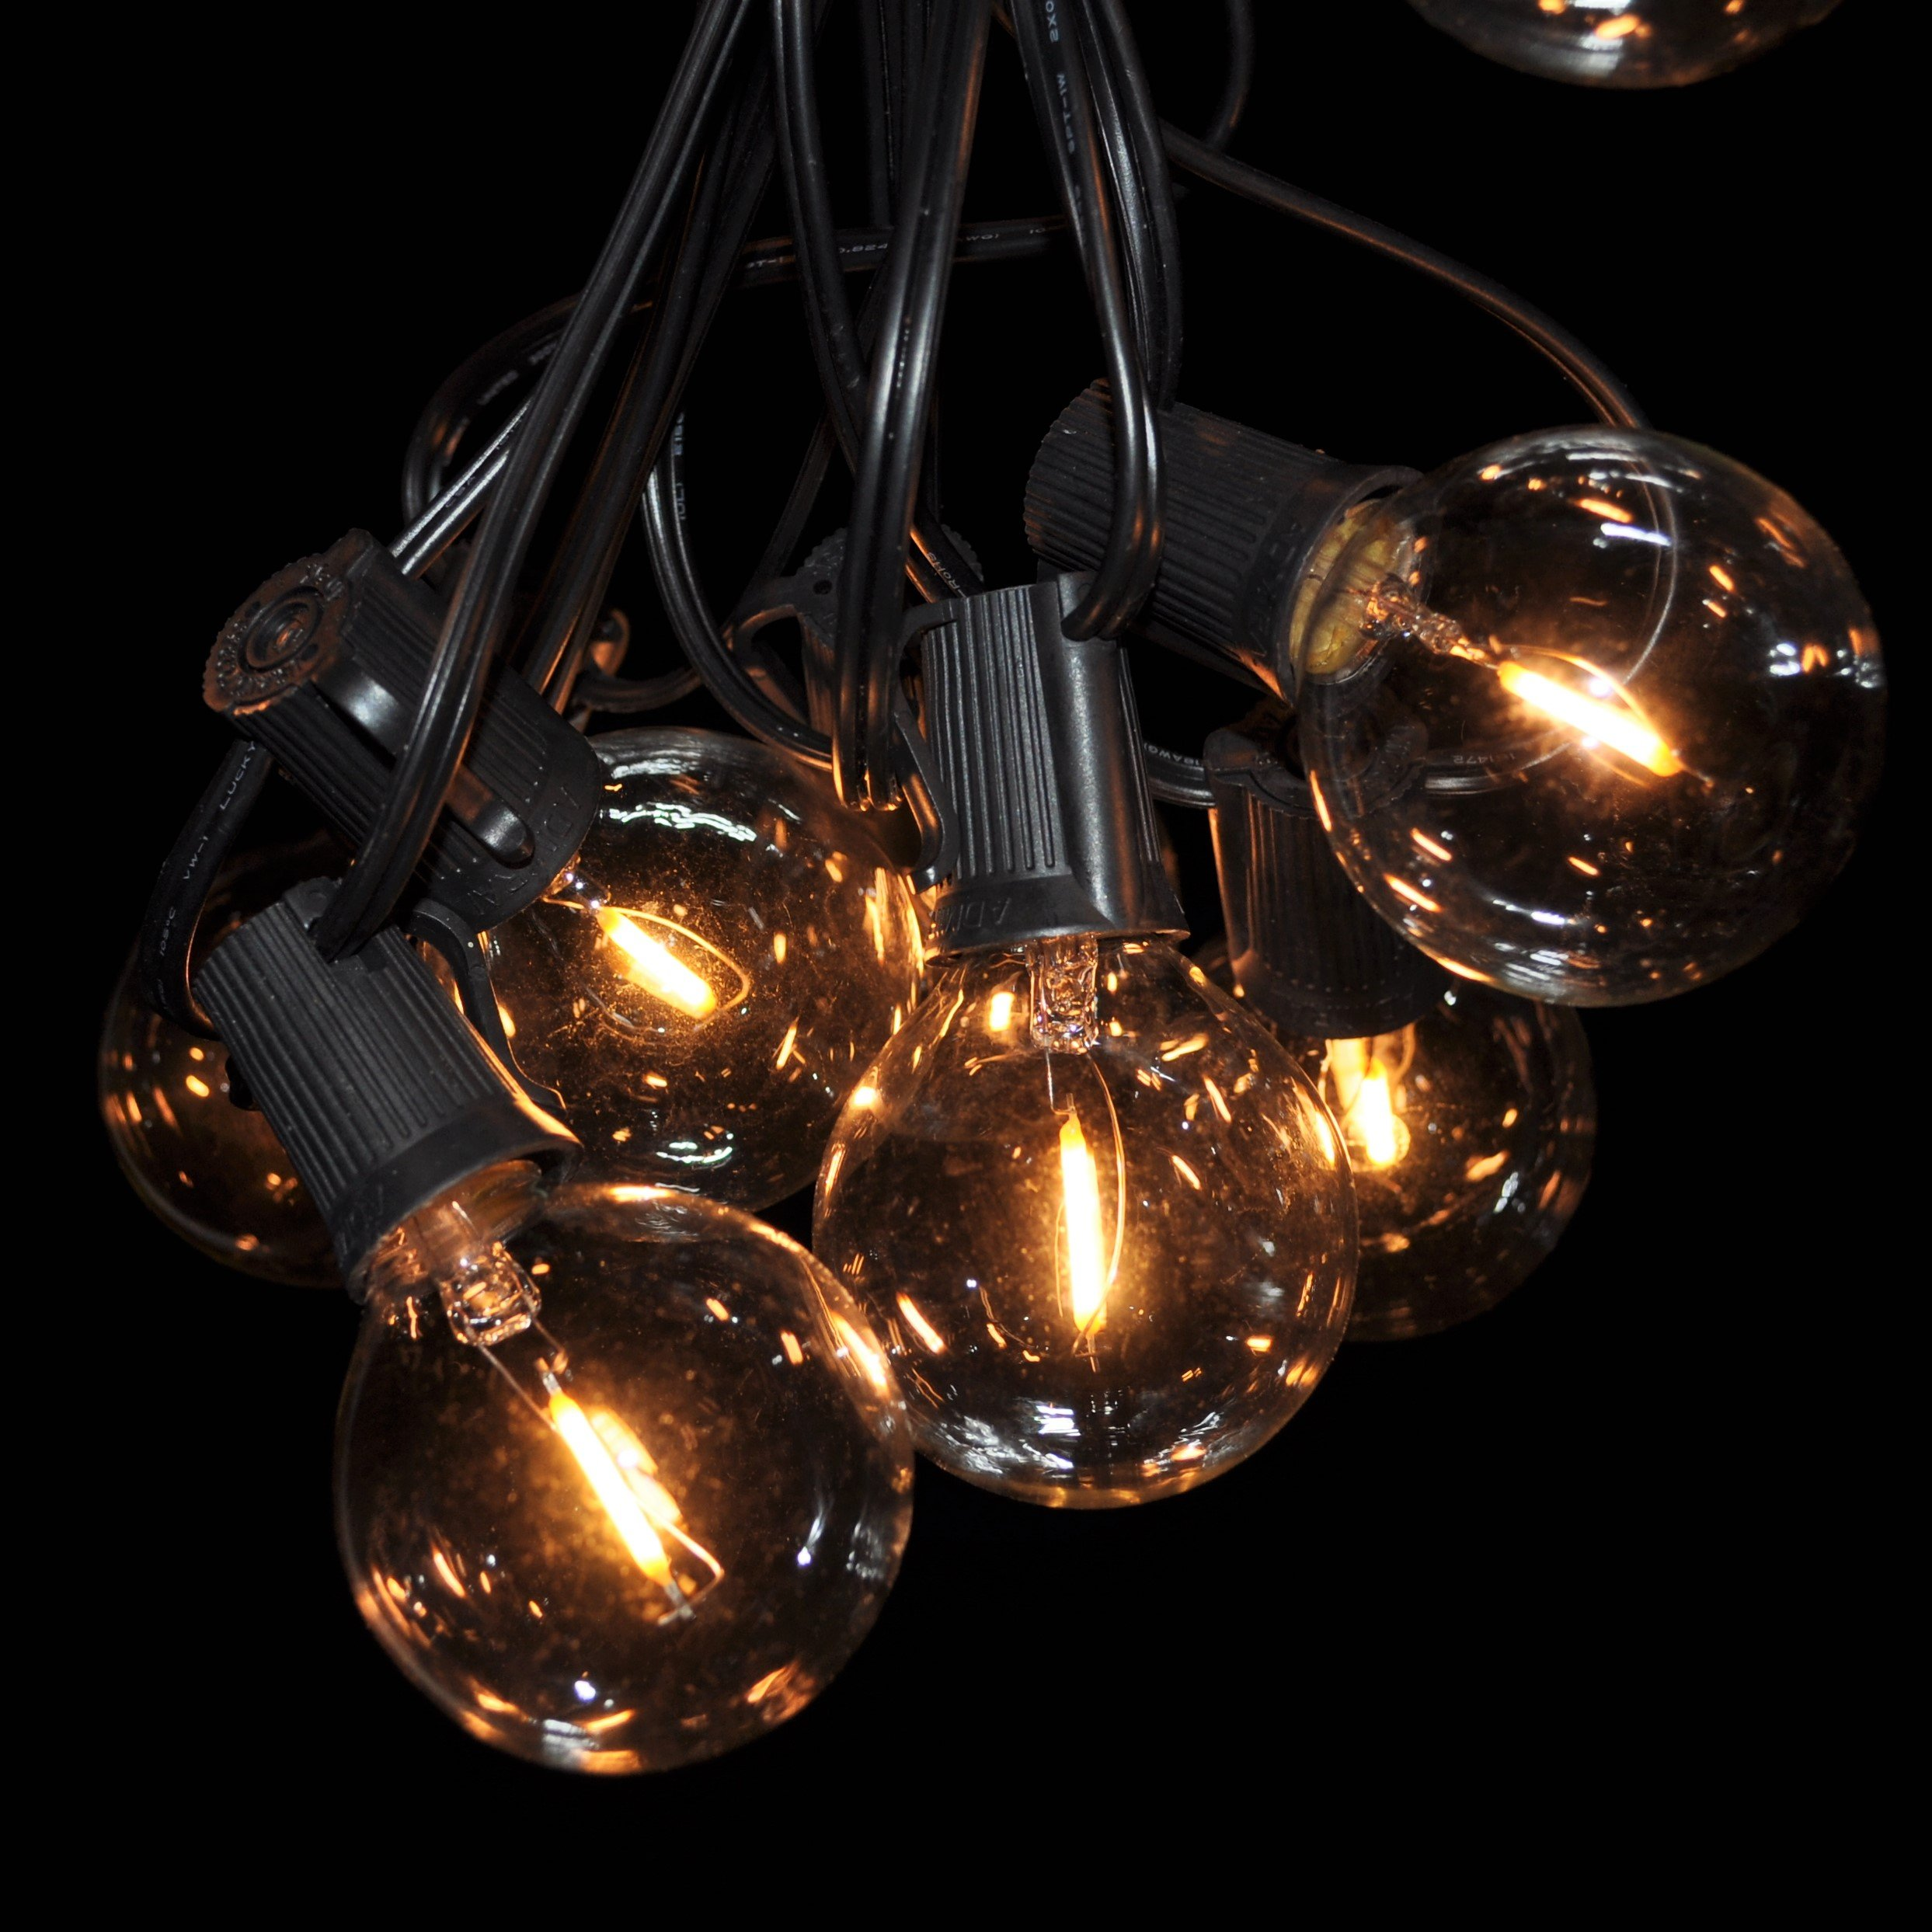 LED Filament Outdoor Patio String Lights (100 ft, LED Filament G50 Clear - Black Wire - 2'' .6 Watt Bulbs)